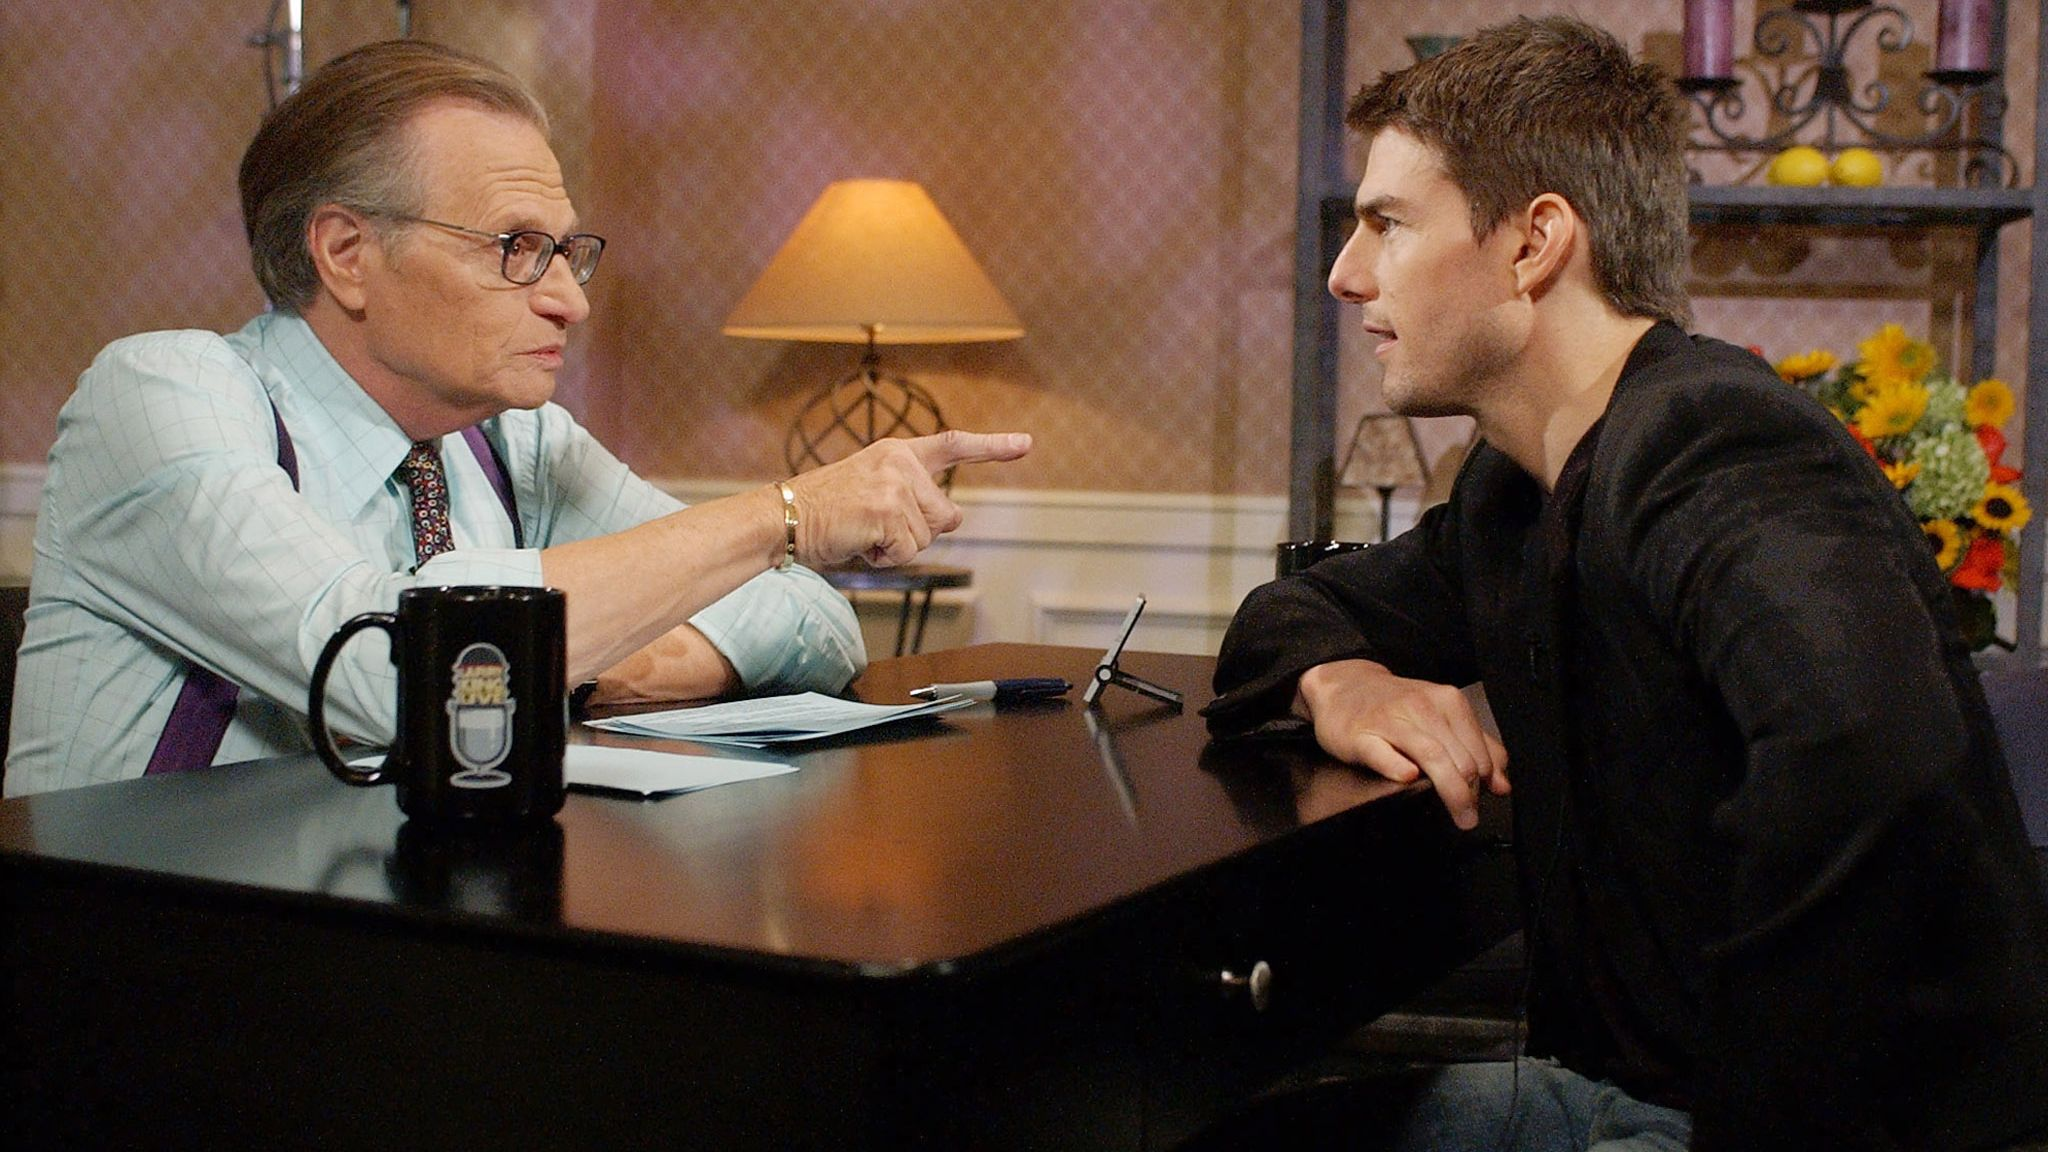 """Actor Tom Cruise (R) chats with Larry King during a taping of CNN's """"Larry King Live"""" in Beverly Hills November 29, 2001. The interview is scheduled to air December 9 while Cruise's next film """"Vanilla Sky"""" opens on December 14. PHOTO TAKEN NOVEMBER 29 REUTERS/Pool/Chris Pizzello CP"""